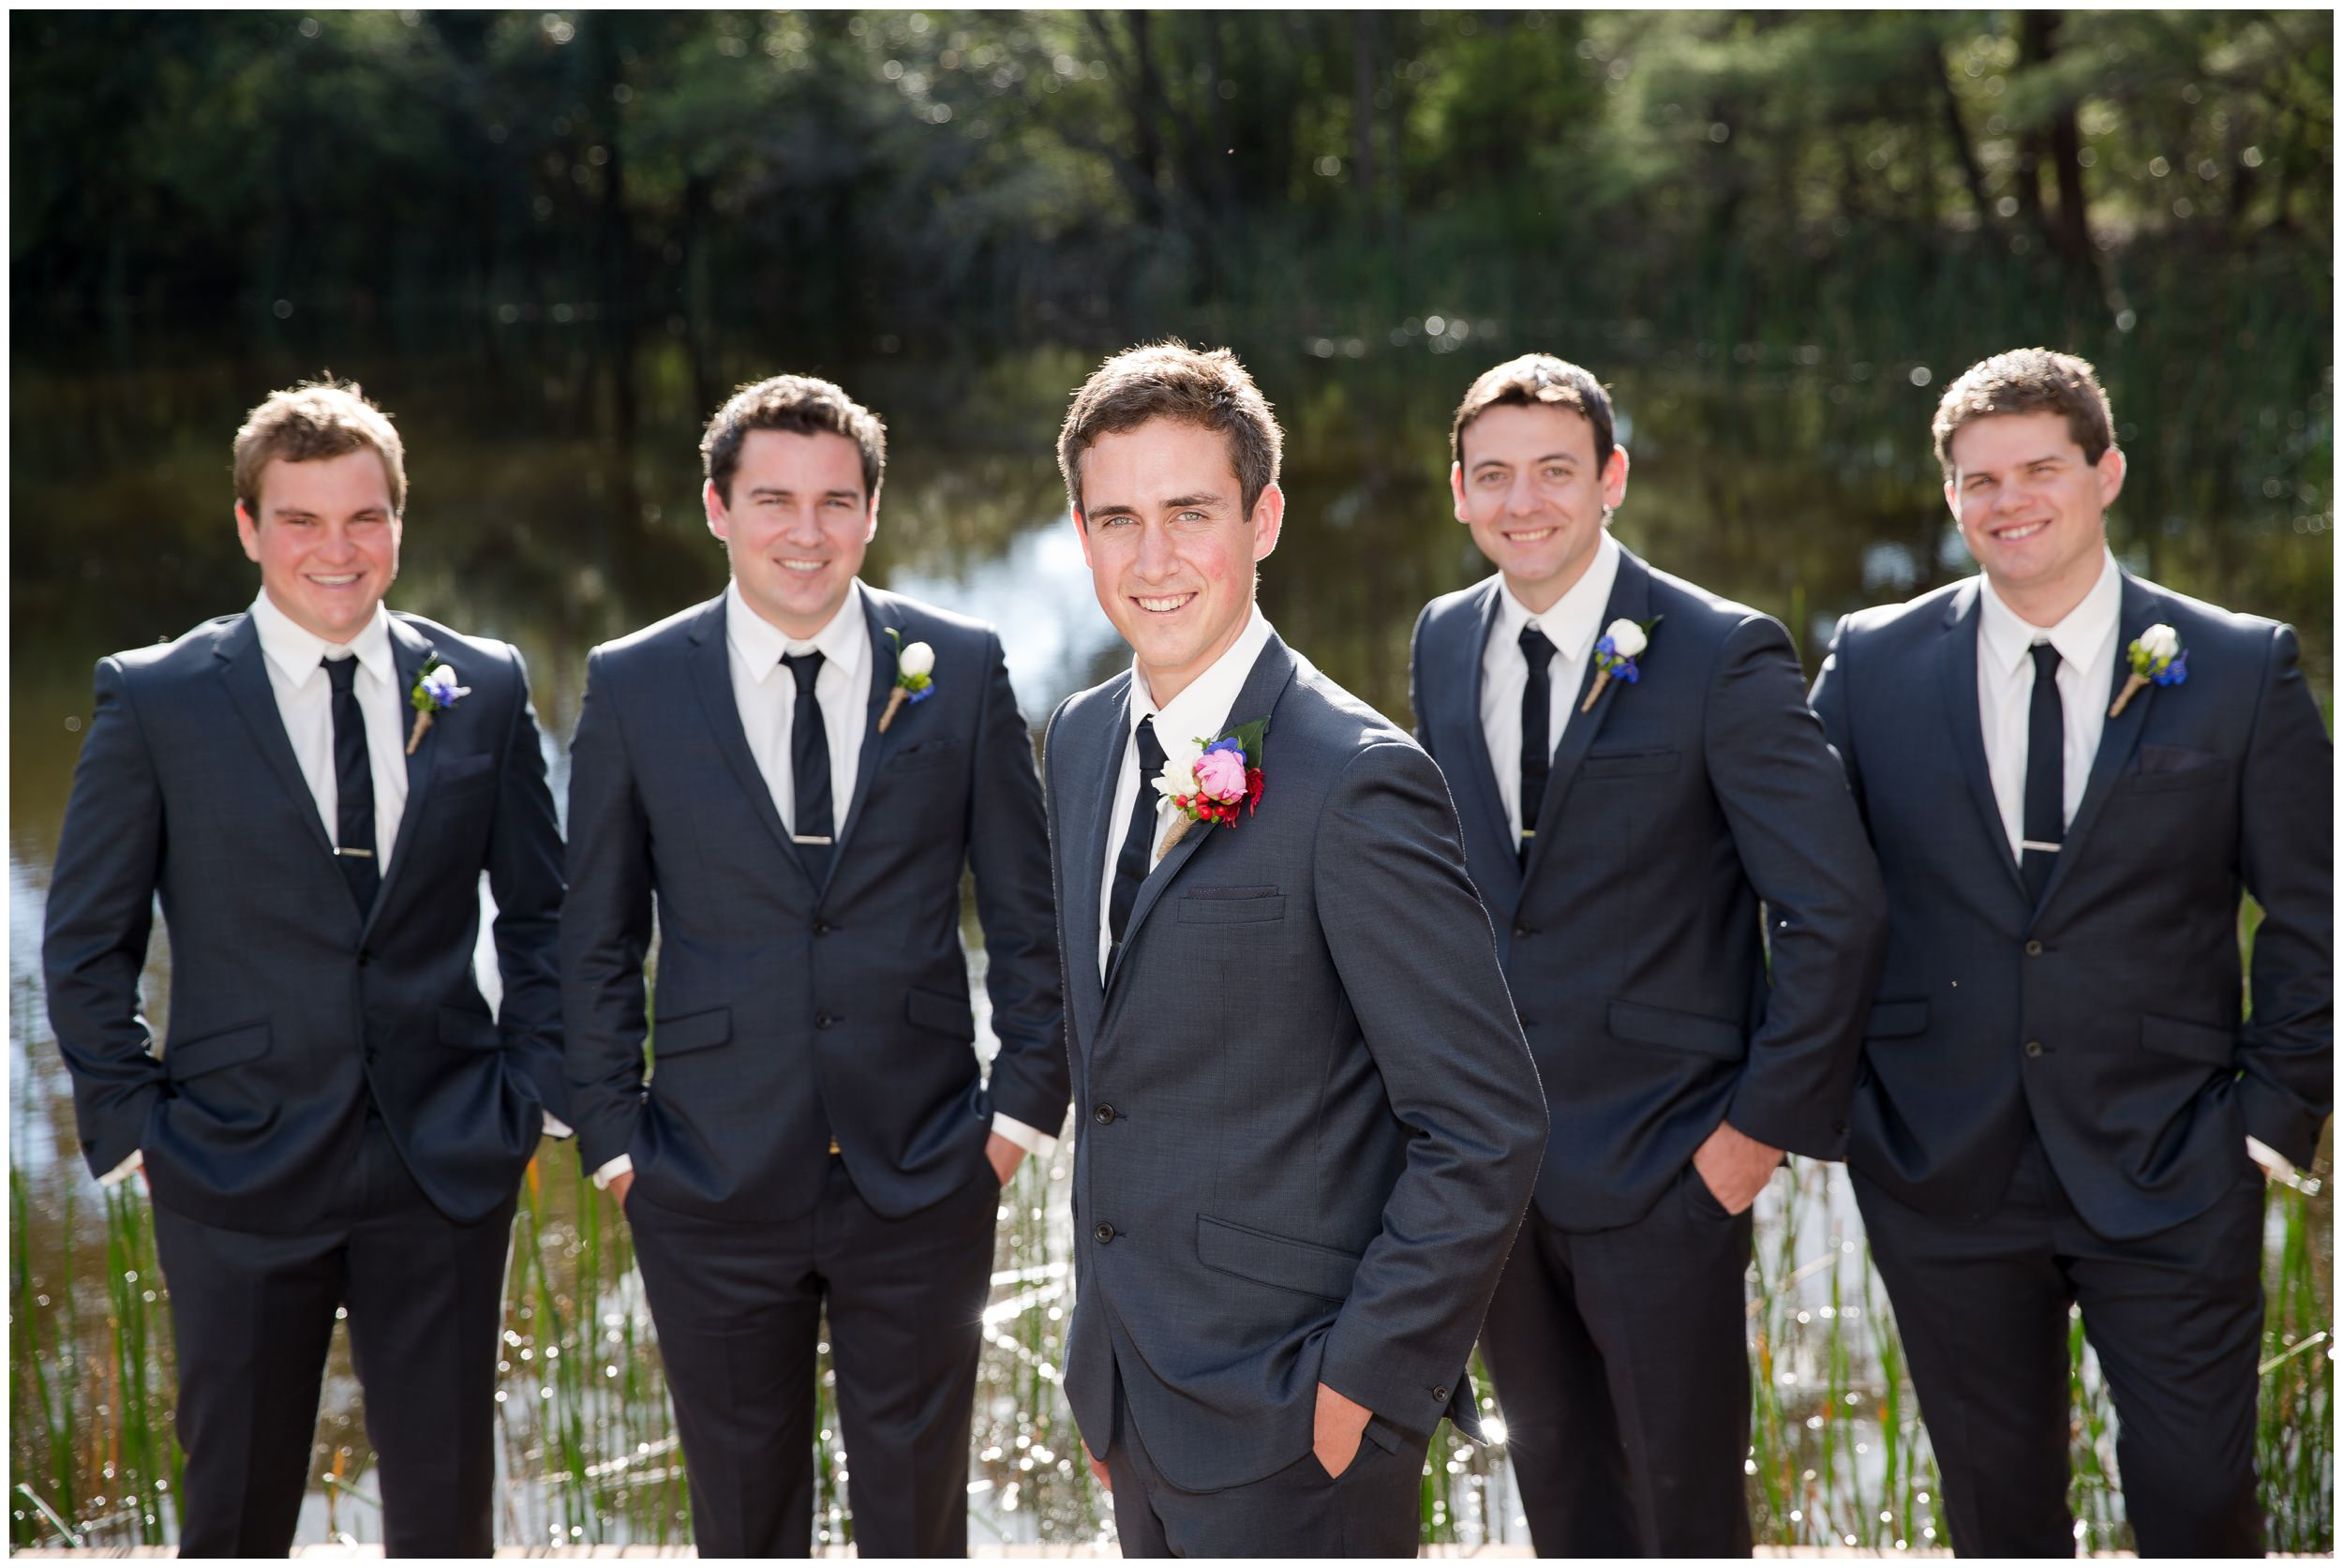 Dubbo Wedding Photographer Blue Mountains Wedding_0136.jpg